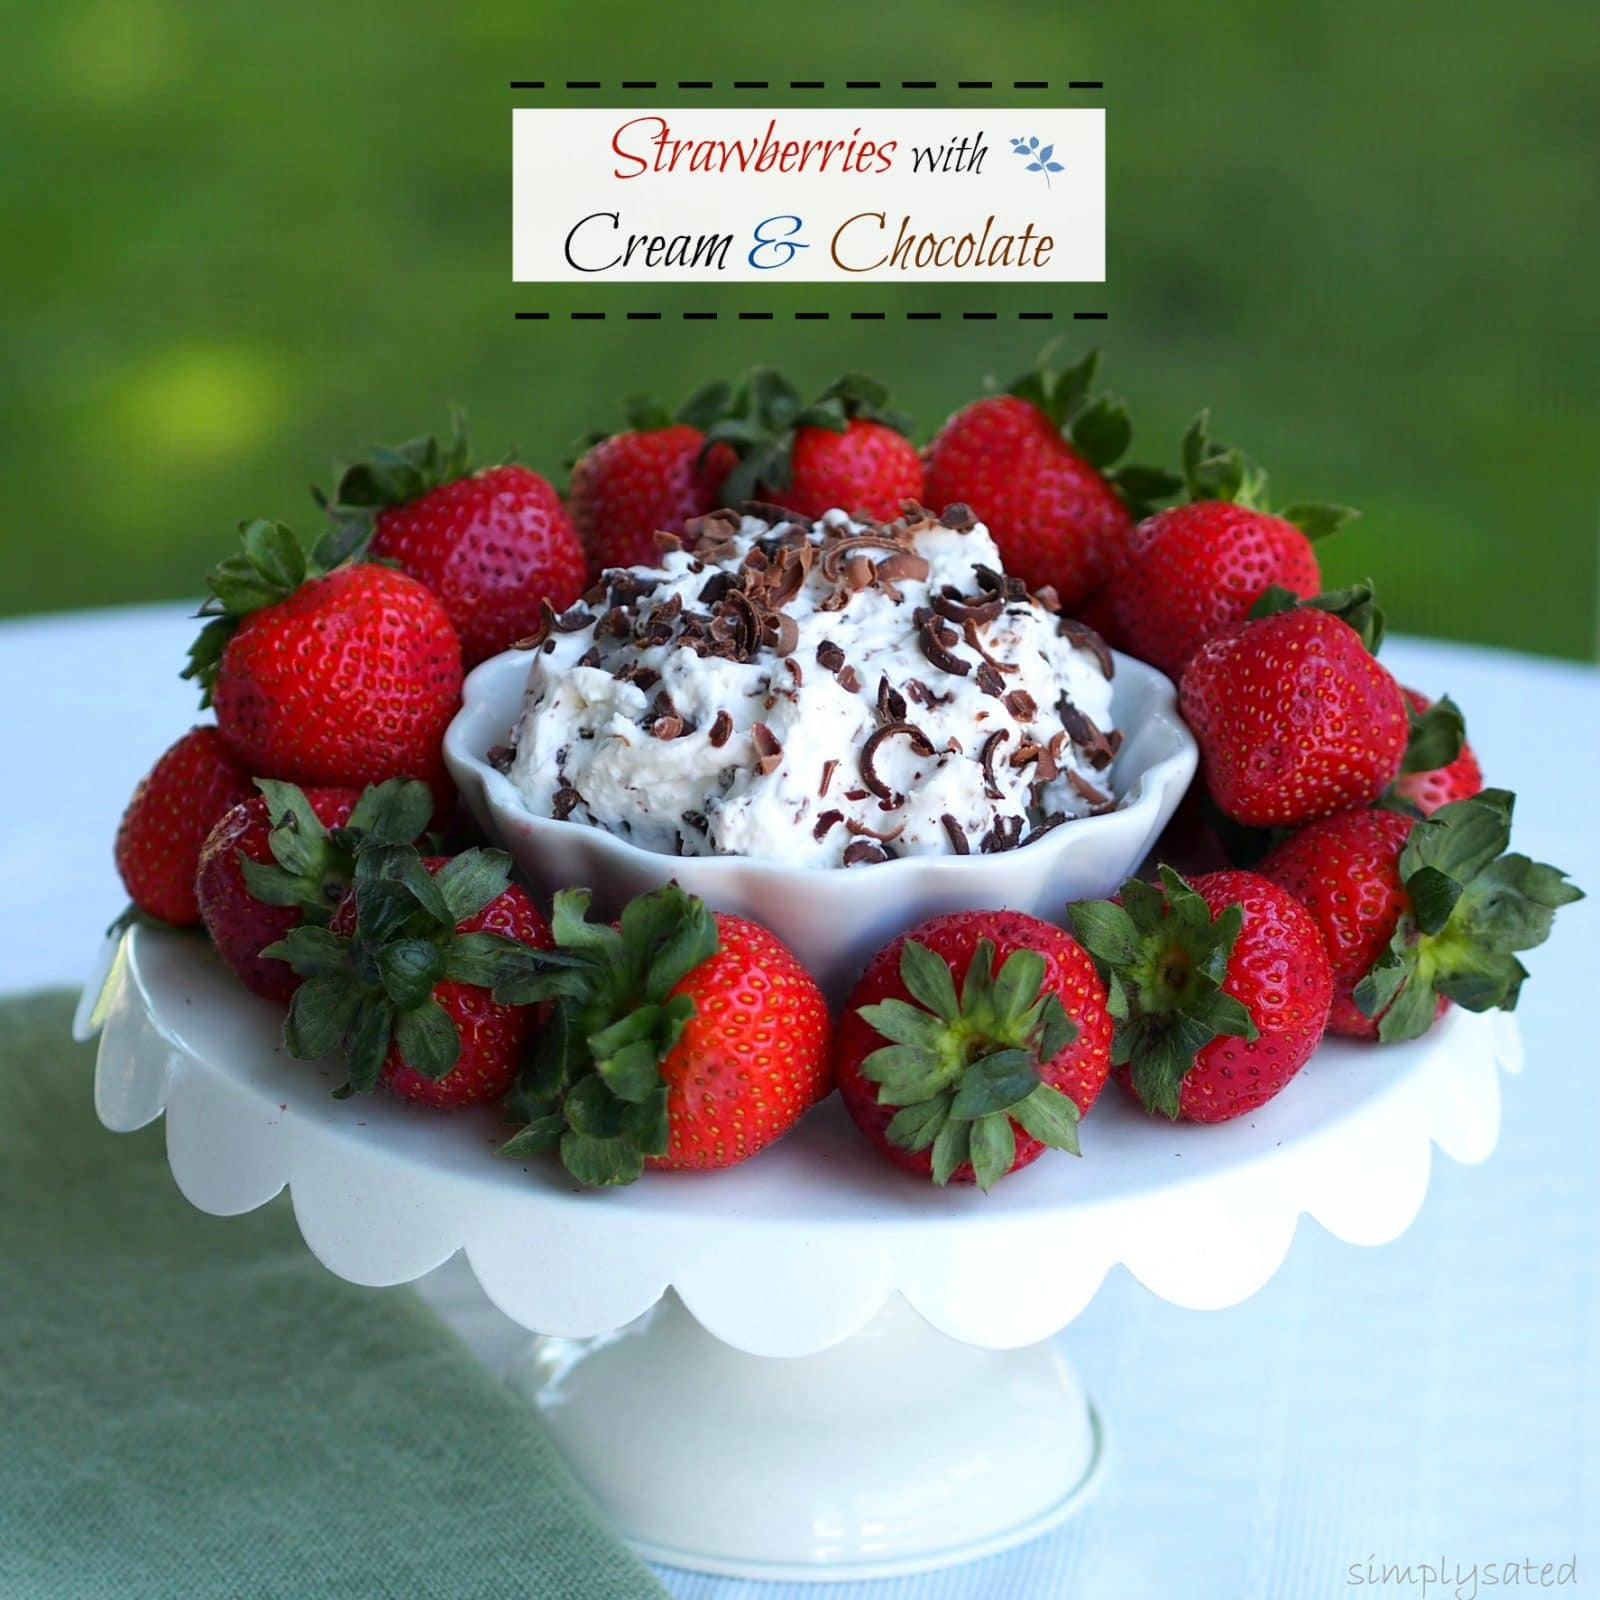 Strawberries & Cream with Chocolate is a beautiful and easy dessert or appetizer. www.simplysated.com